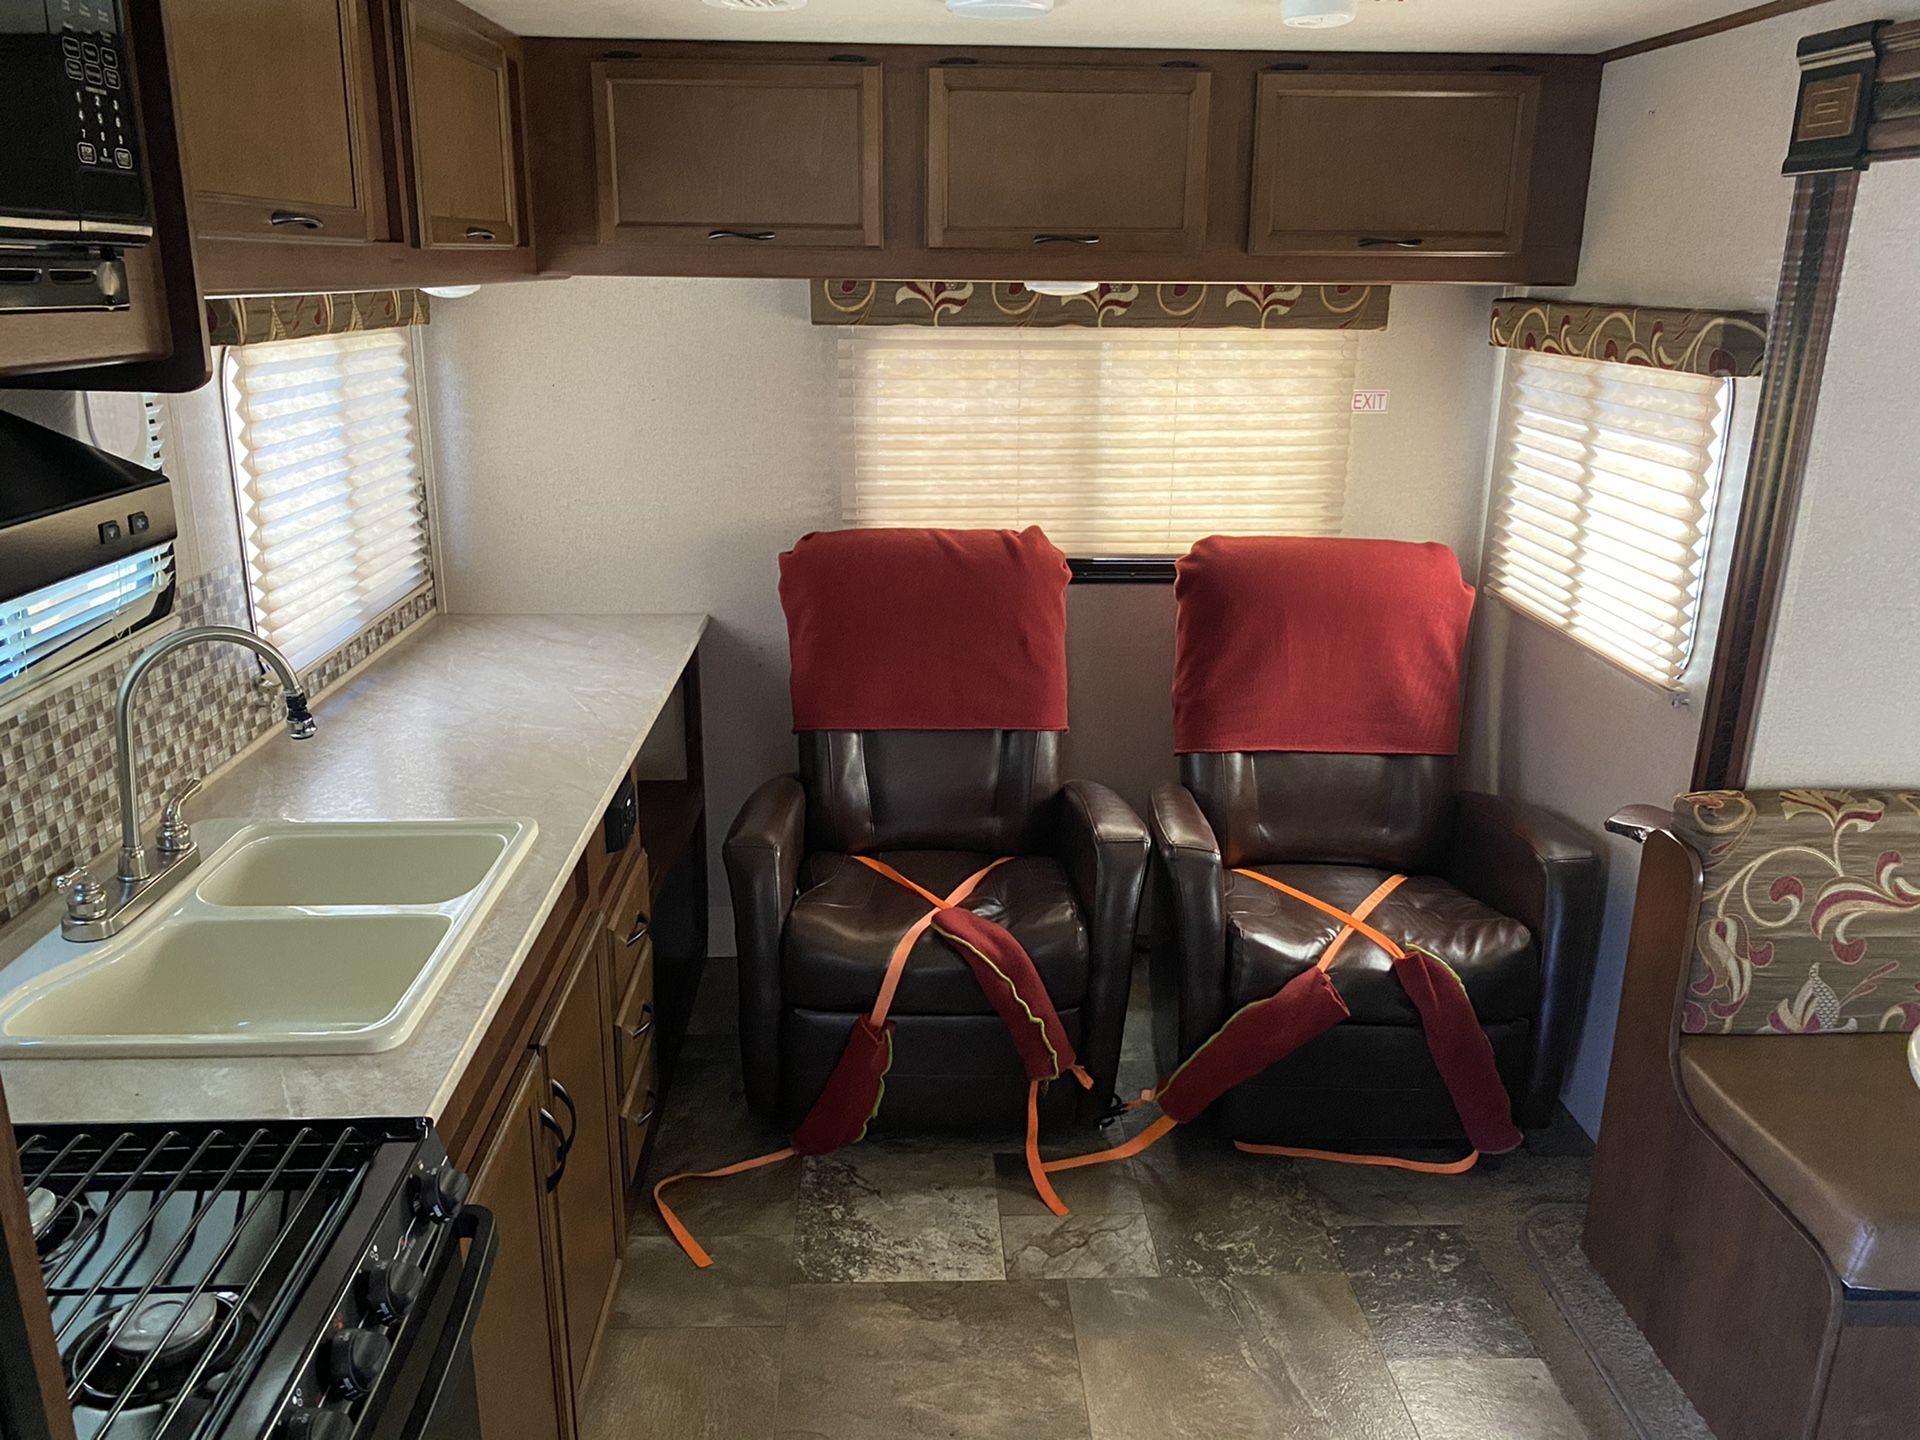 2017 Jayco jay feather 23FT In excellent condition